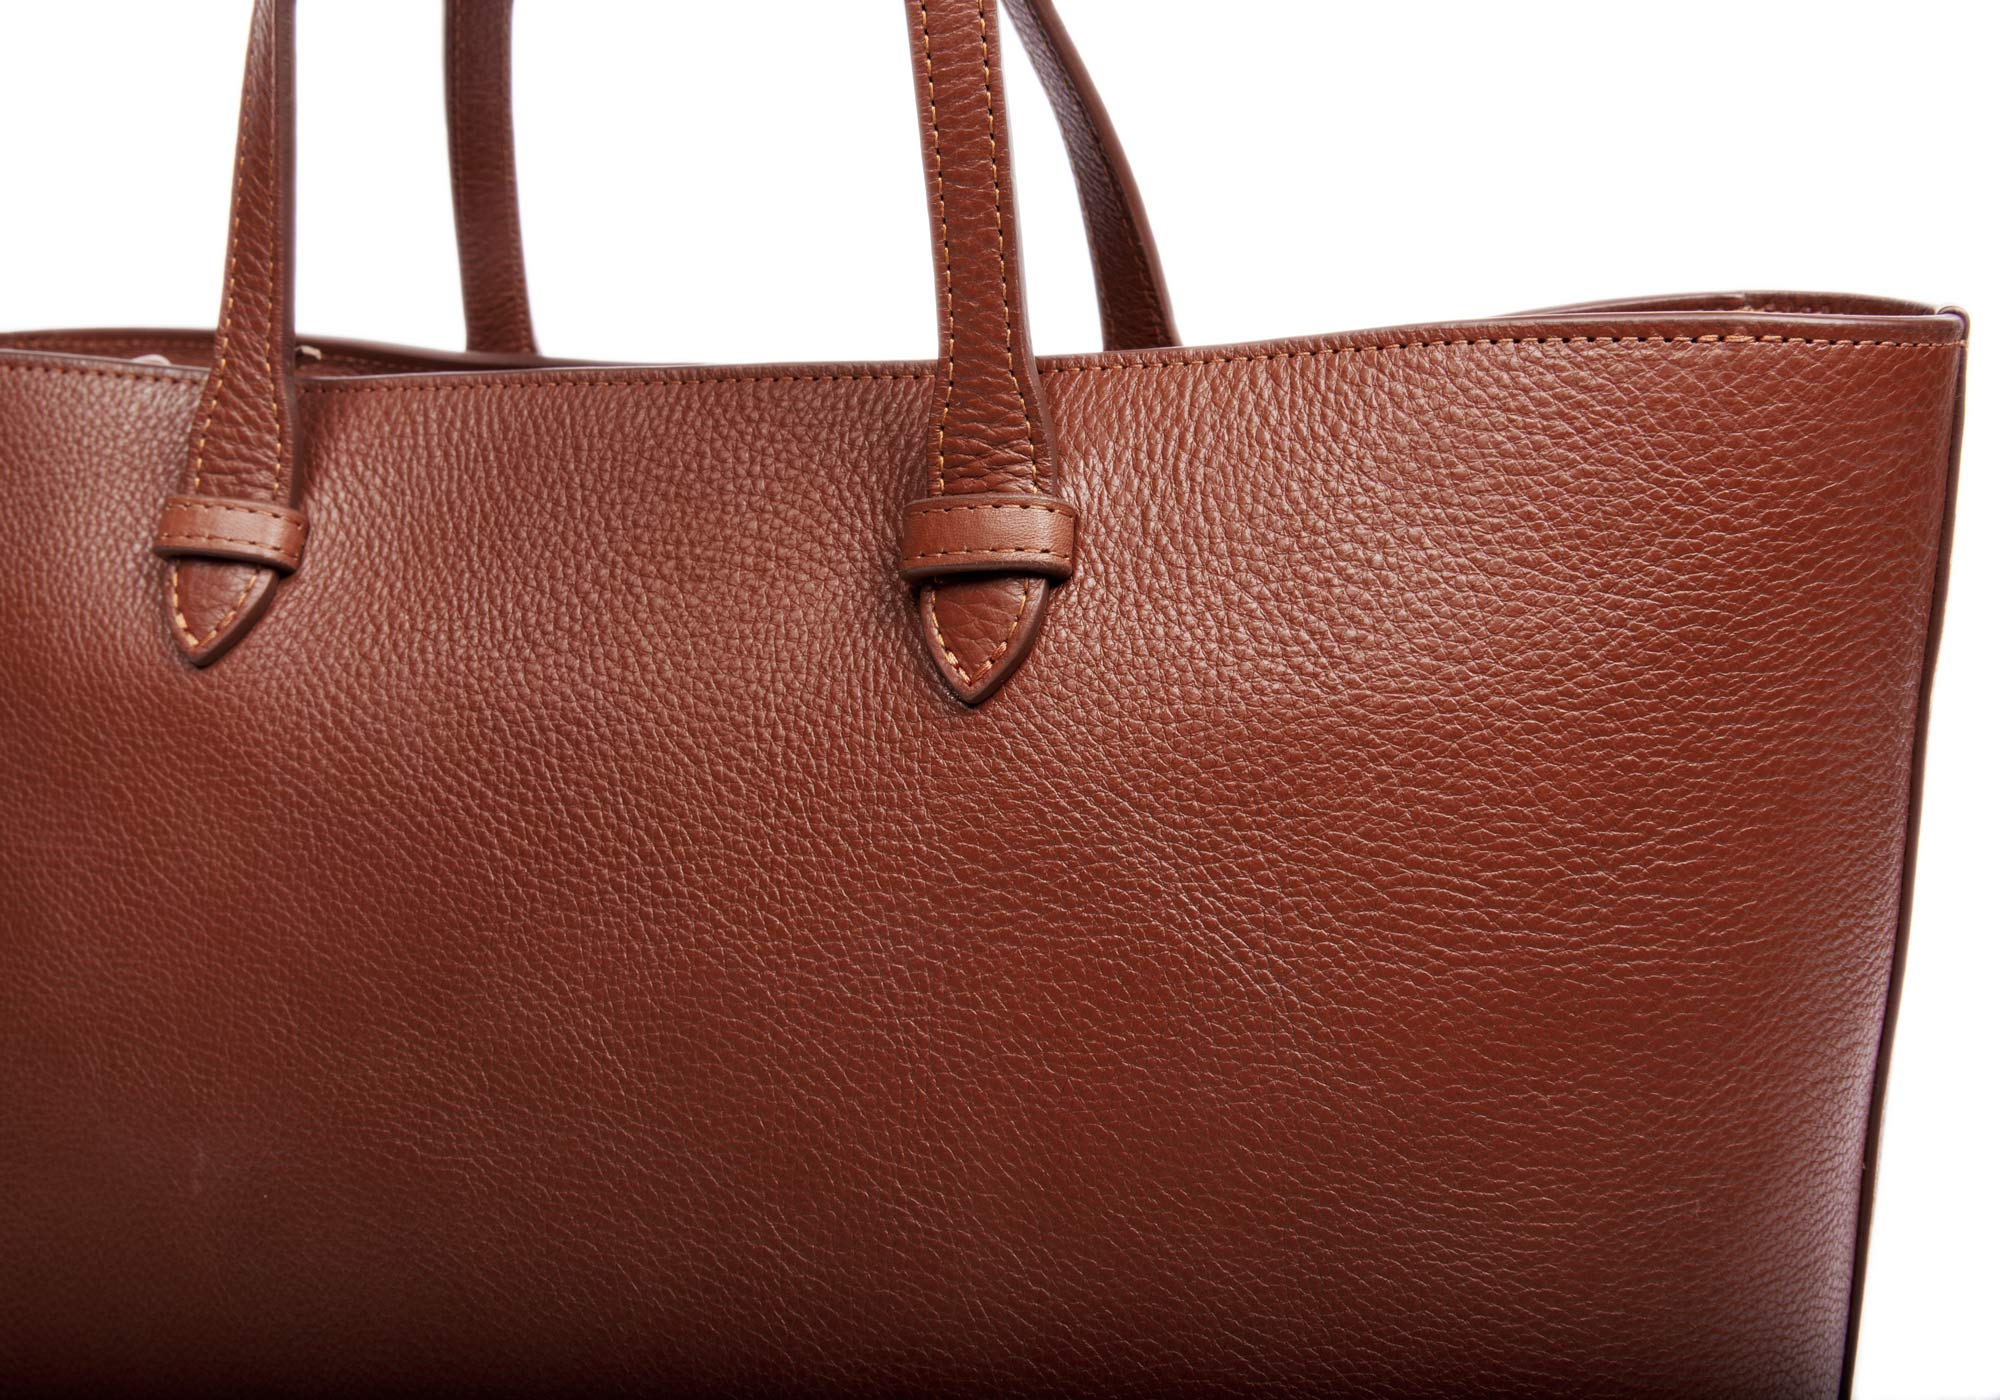 No. 12 Leather Tote Chestnut